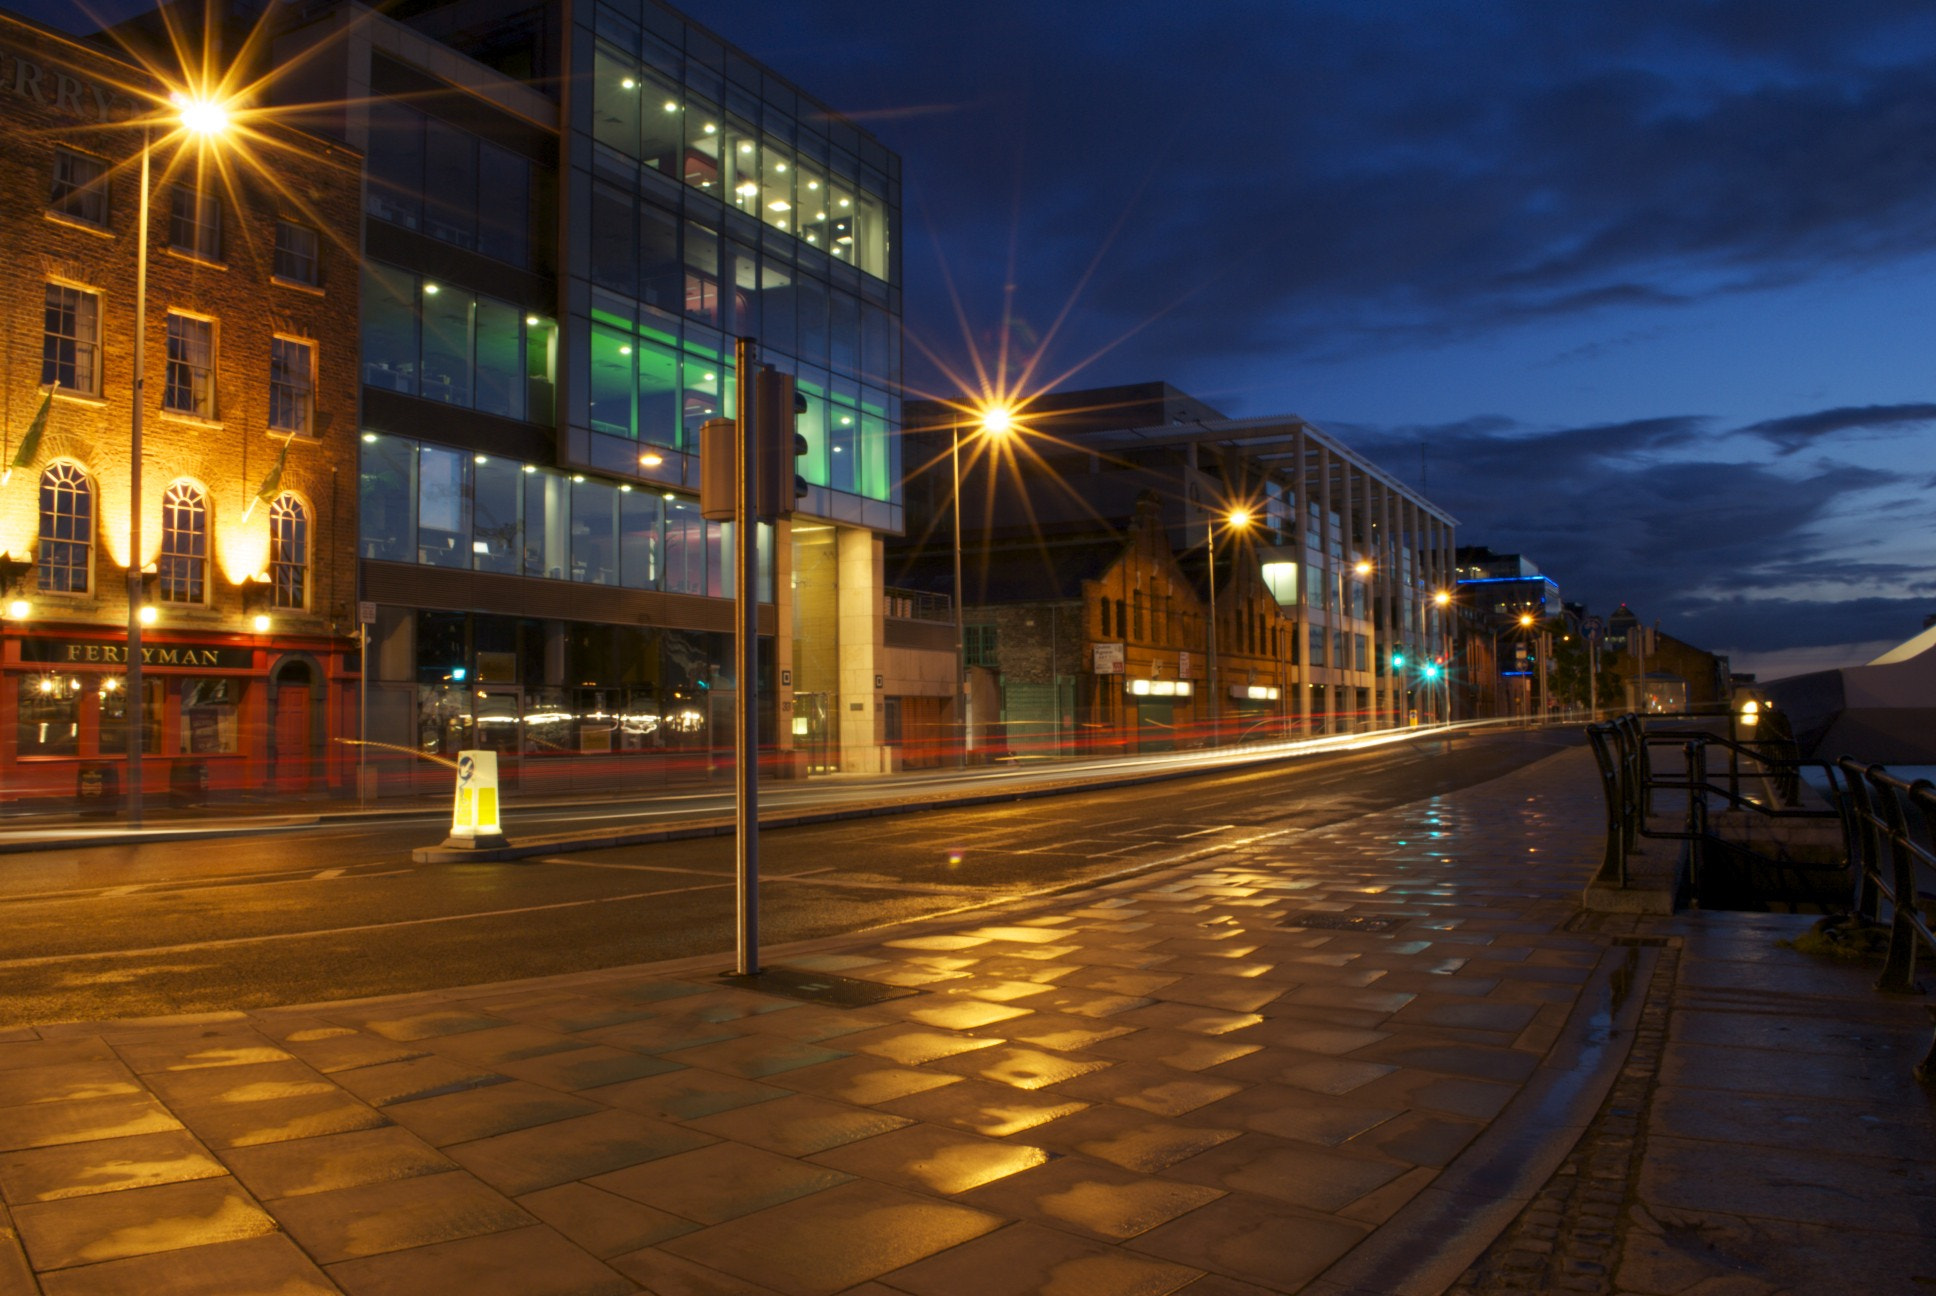 Photograph Night on the Quays by Damian Synnott on 500px